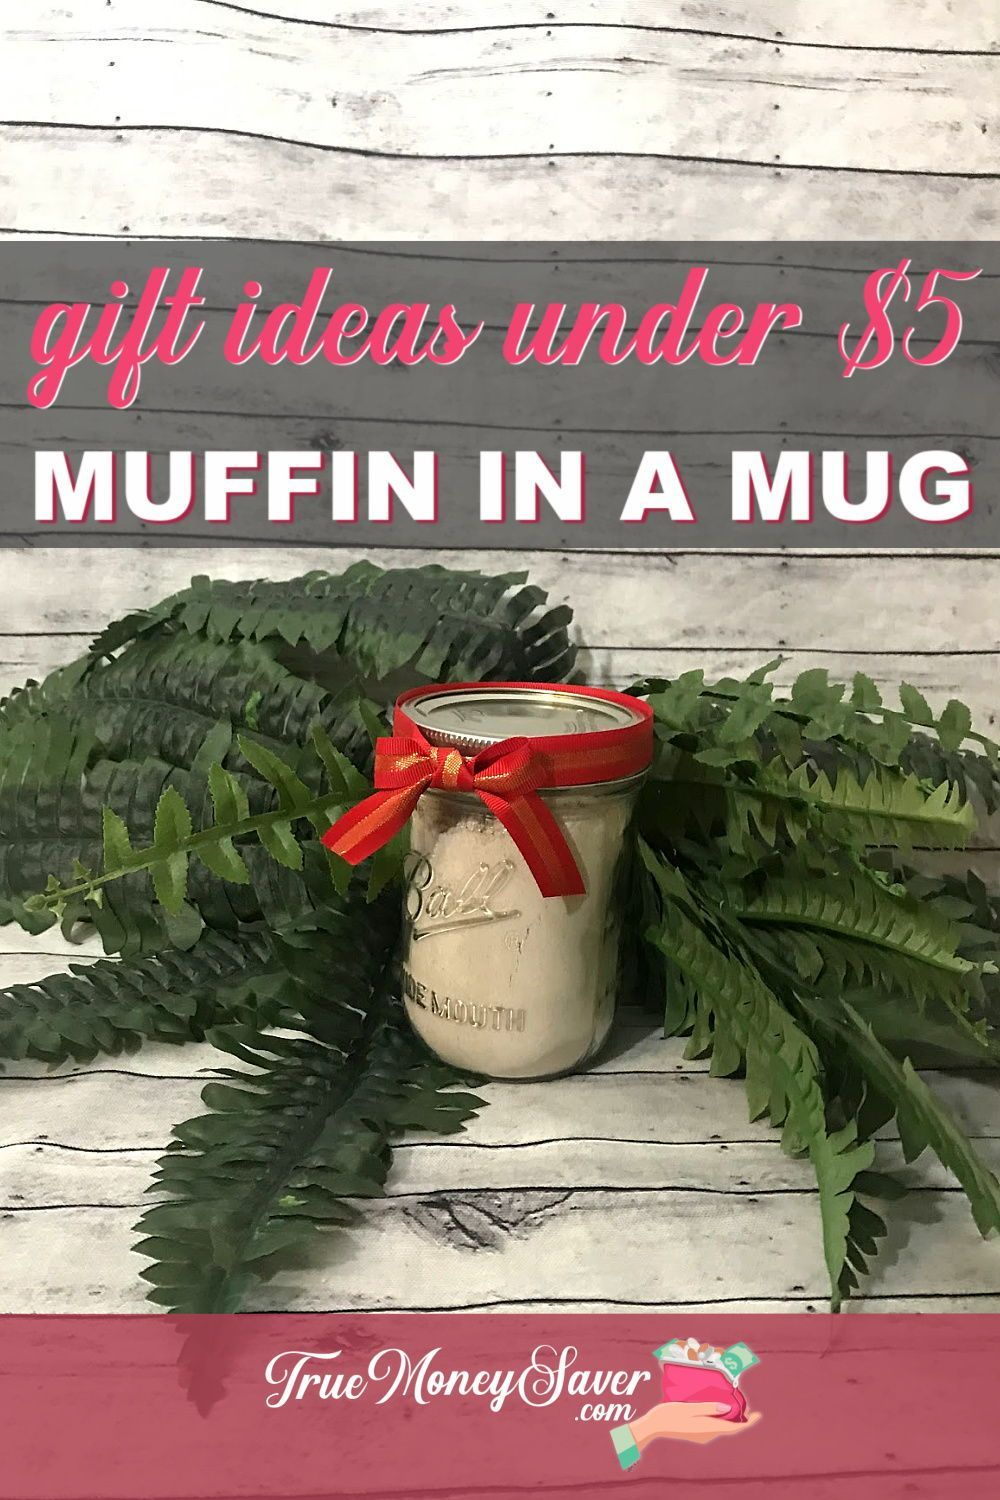 This is one SWEET #DIY! Check out these NEW 12 #gifts under $5! They are DIY gift ideas that everyone will love! Plus, these creative DIY #homemade gifts will help keep your budget in check! #truemoneysaver #christmas #gifts #makeyourowngifts #doityourselfgifts #craftedgifts #giftstomake   cheap gifts   cheap Christmas presents   cheap gift ideas   muffins in a mug   diy muffins   diy Christmas gifts   homemade gift   microwave muffin in a mug   homemade presents   muffin recipes  